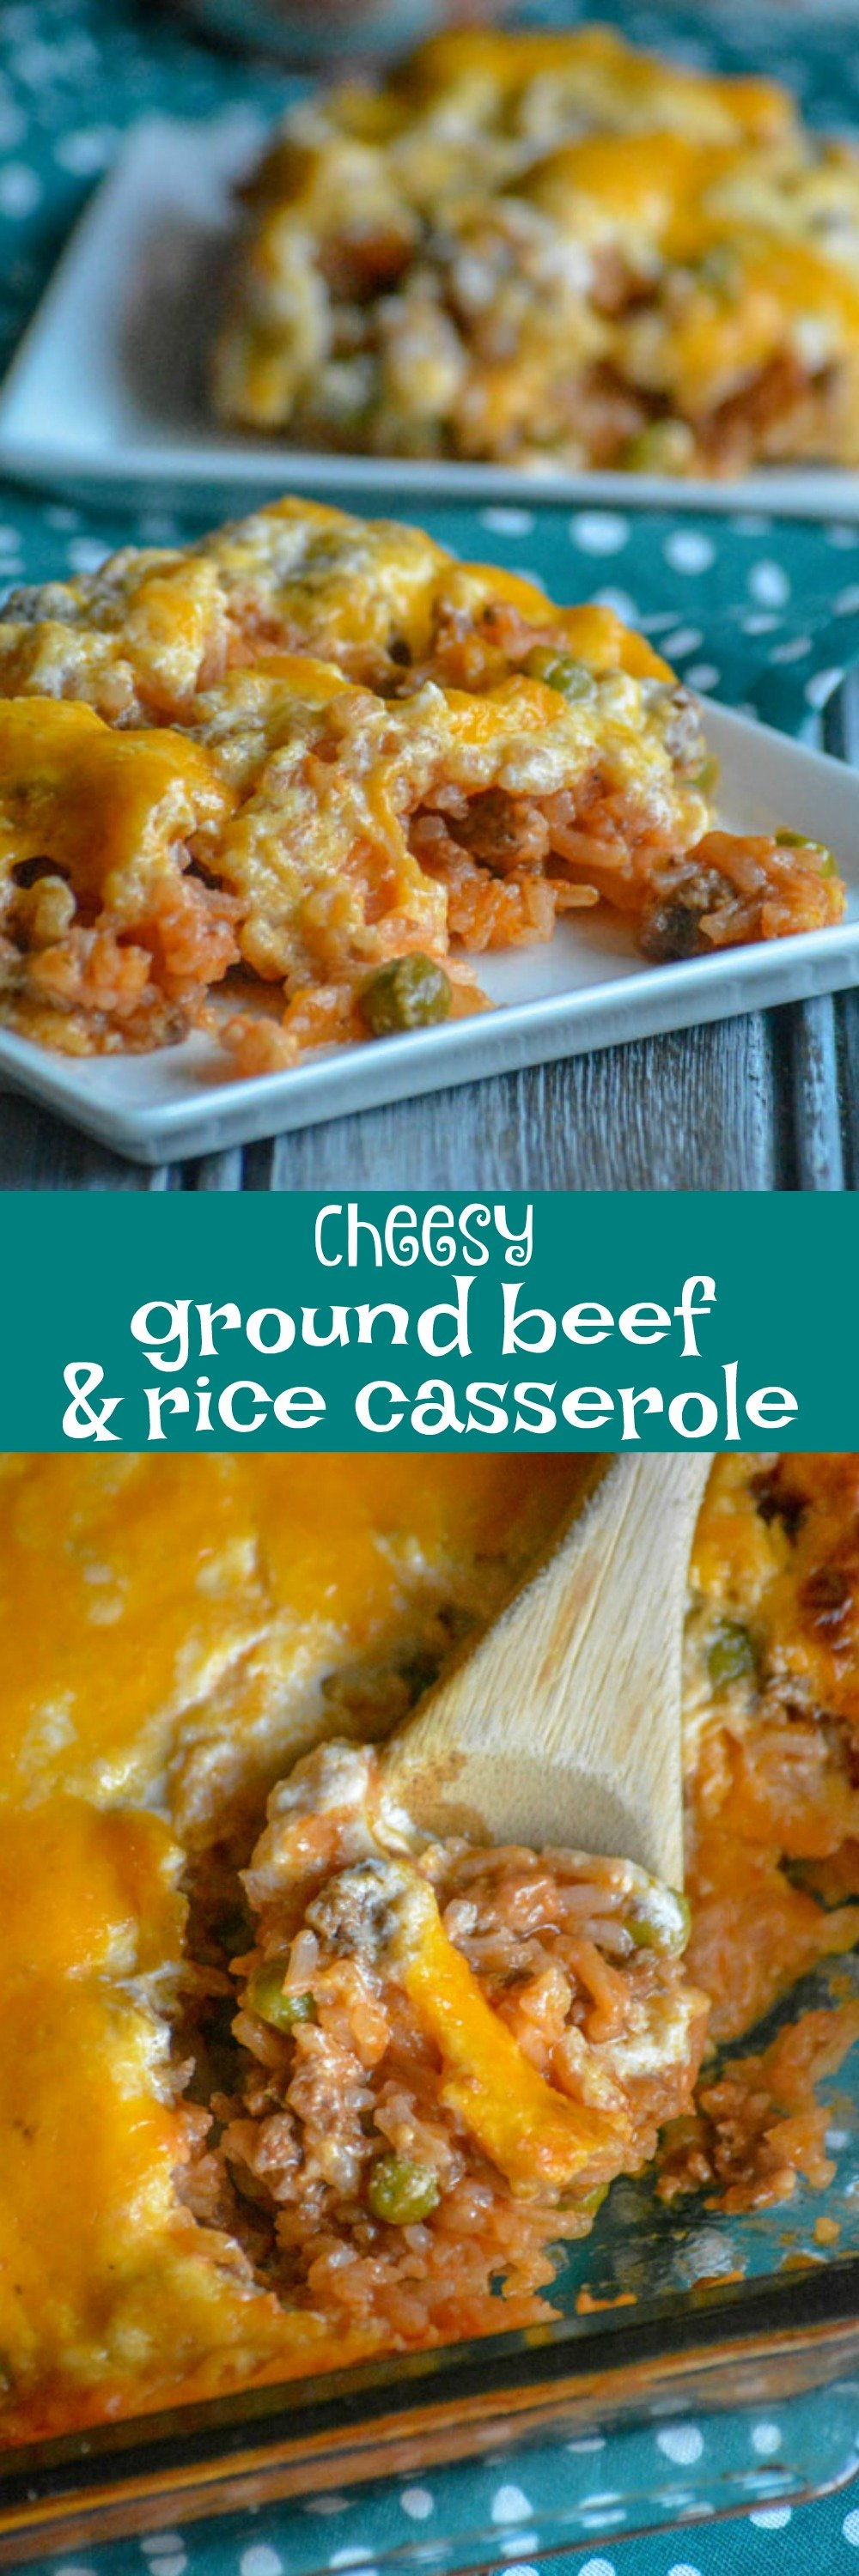 A perfect, quick & easy weeknight meal, comfort food like this flavorful Cheesy Ground Beef And Rice Casserole is studded with kid friendly veggies and a creamy cheesy topping, making it a dinner kids will love and the answer to many a busy parent's prayers.